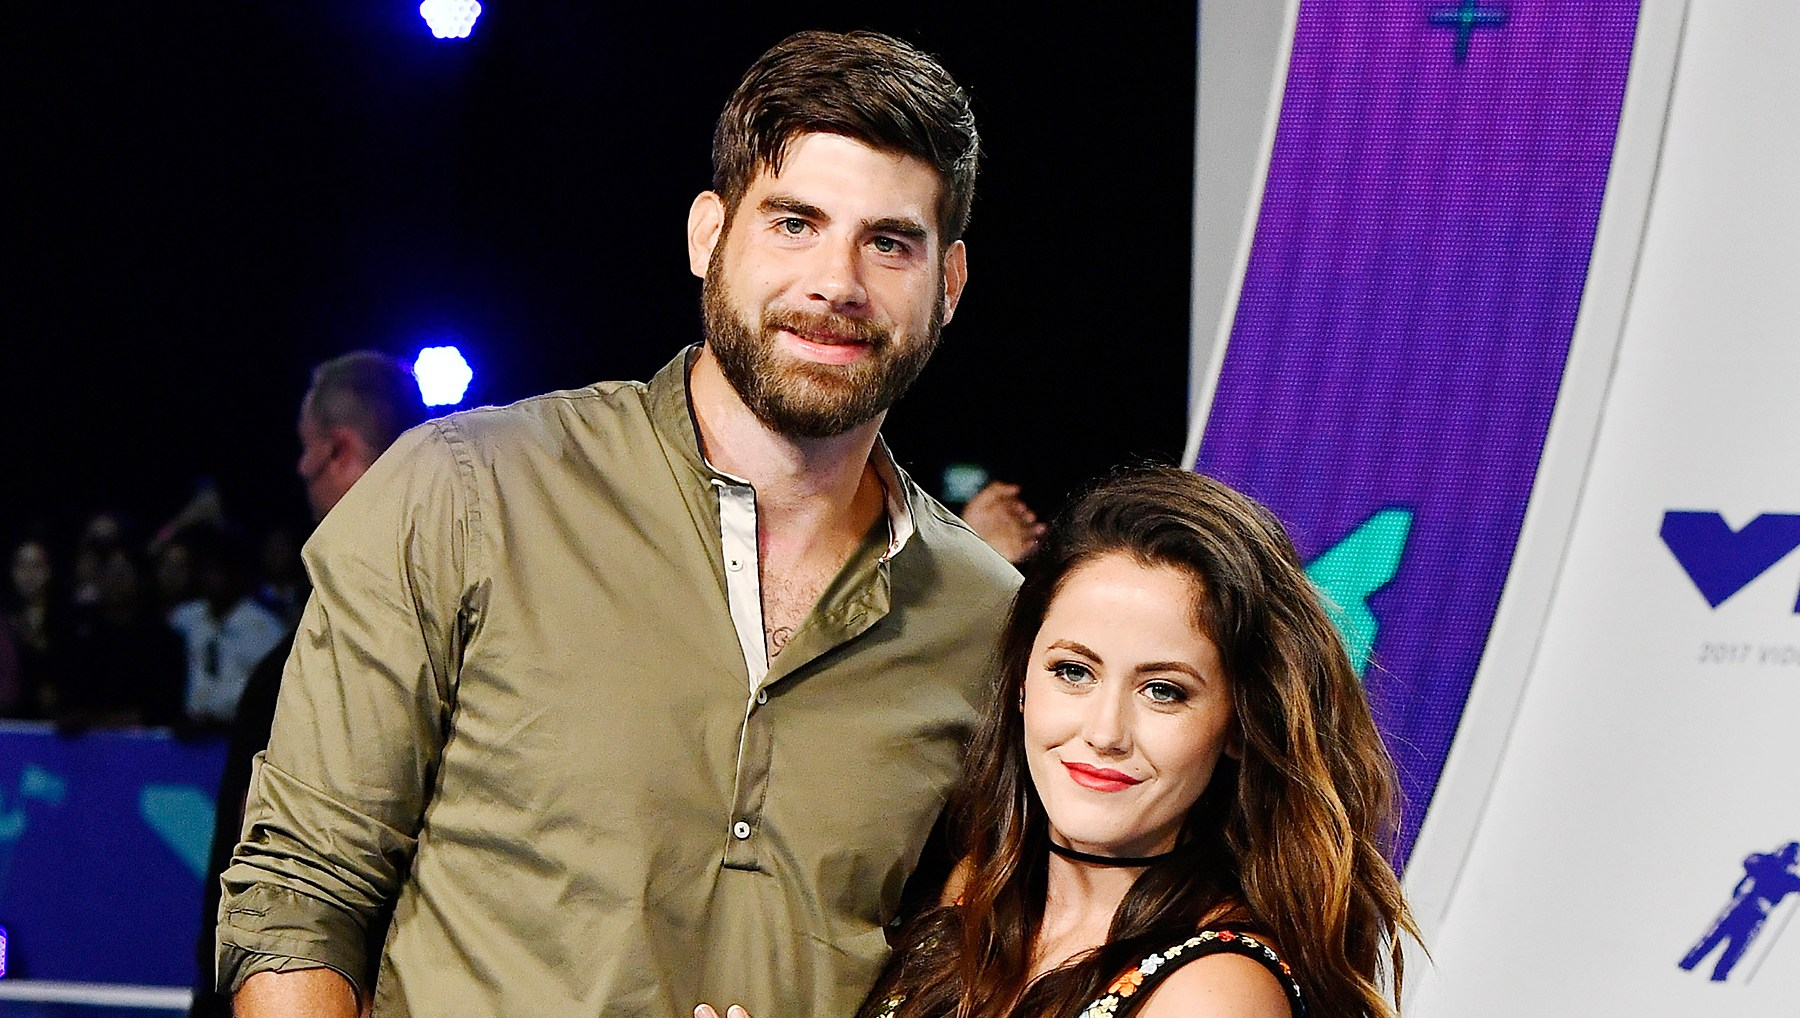 Jenelle Evans Defends David Eason After Homophobic Tweets